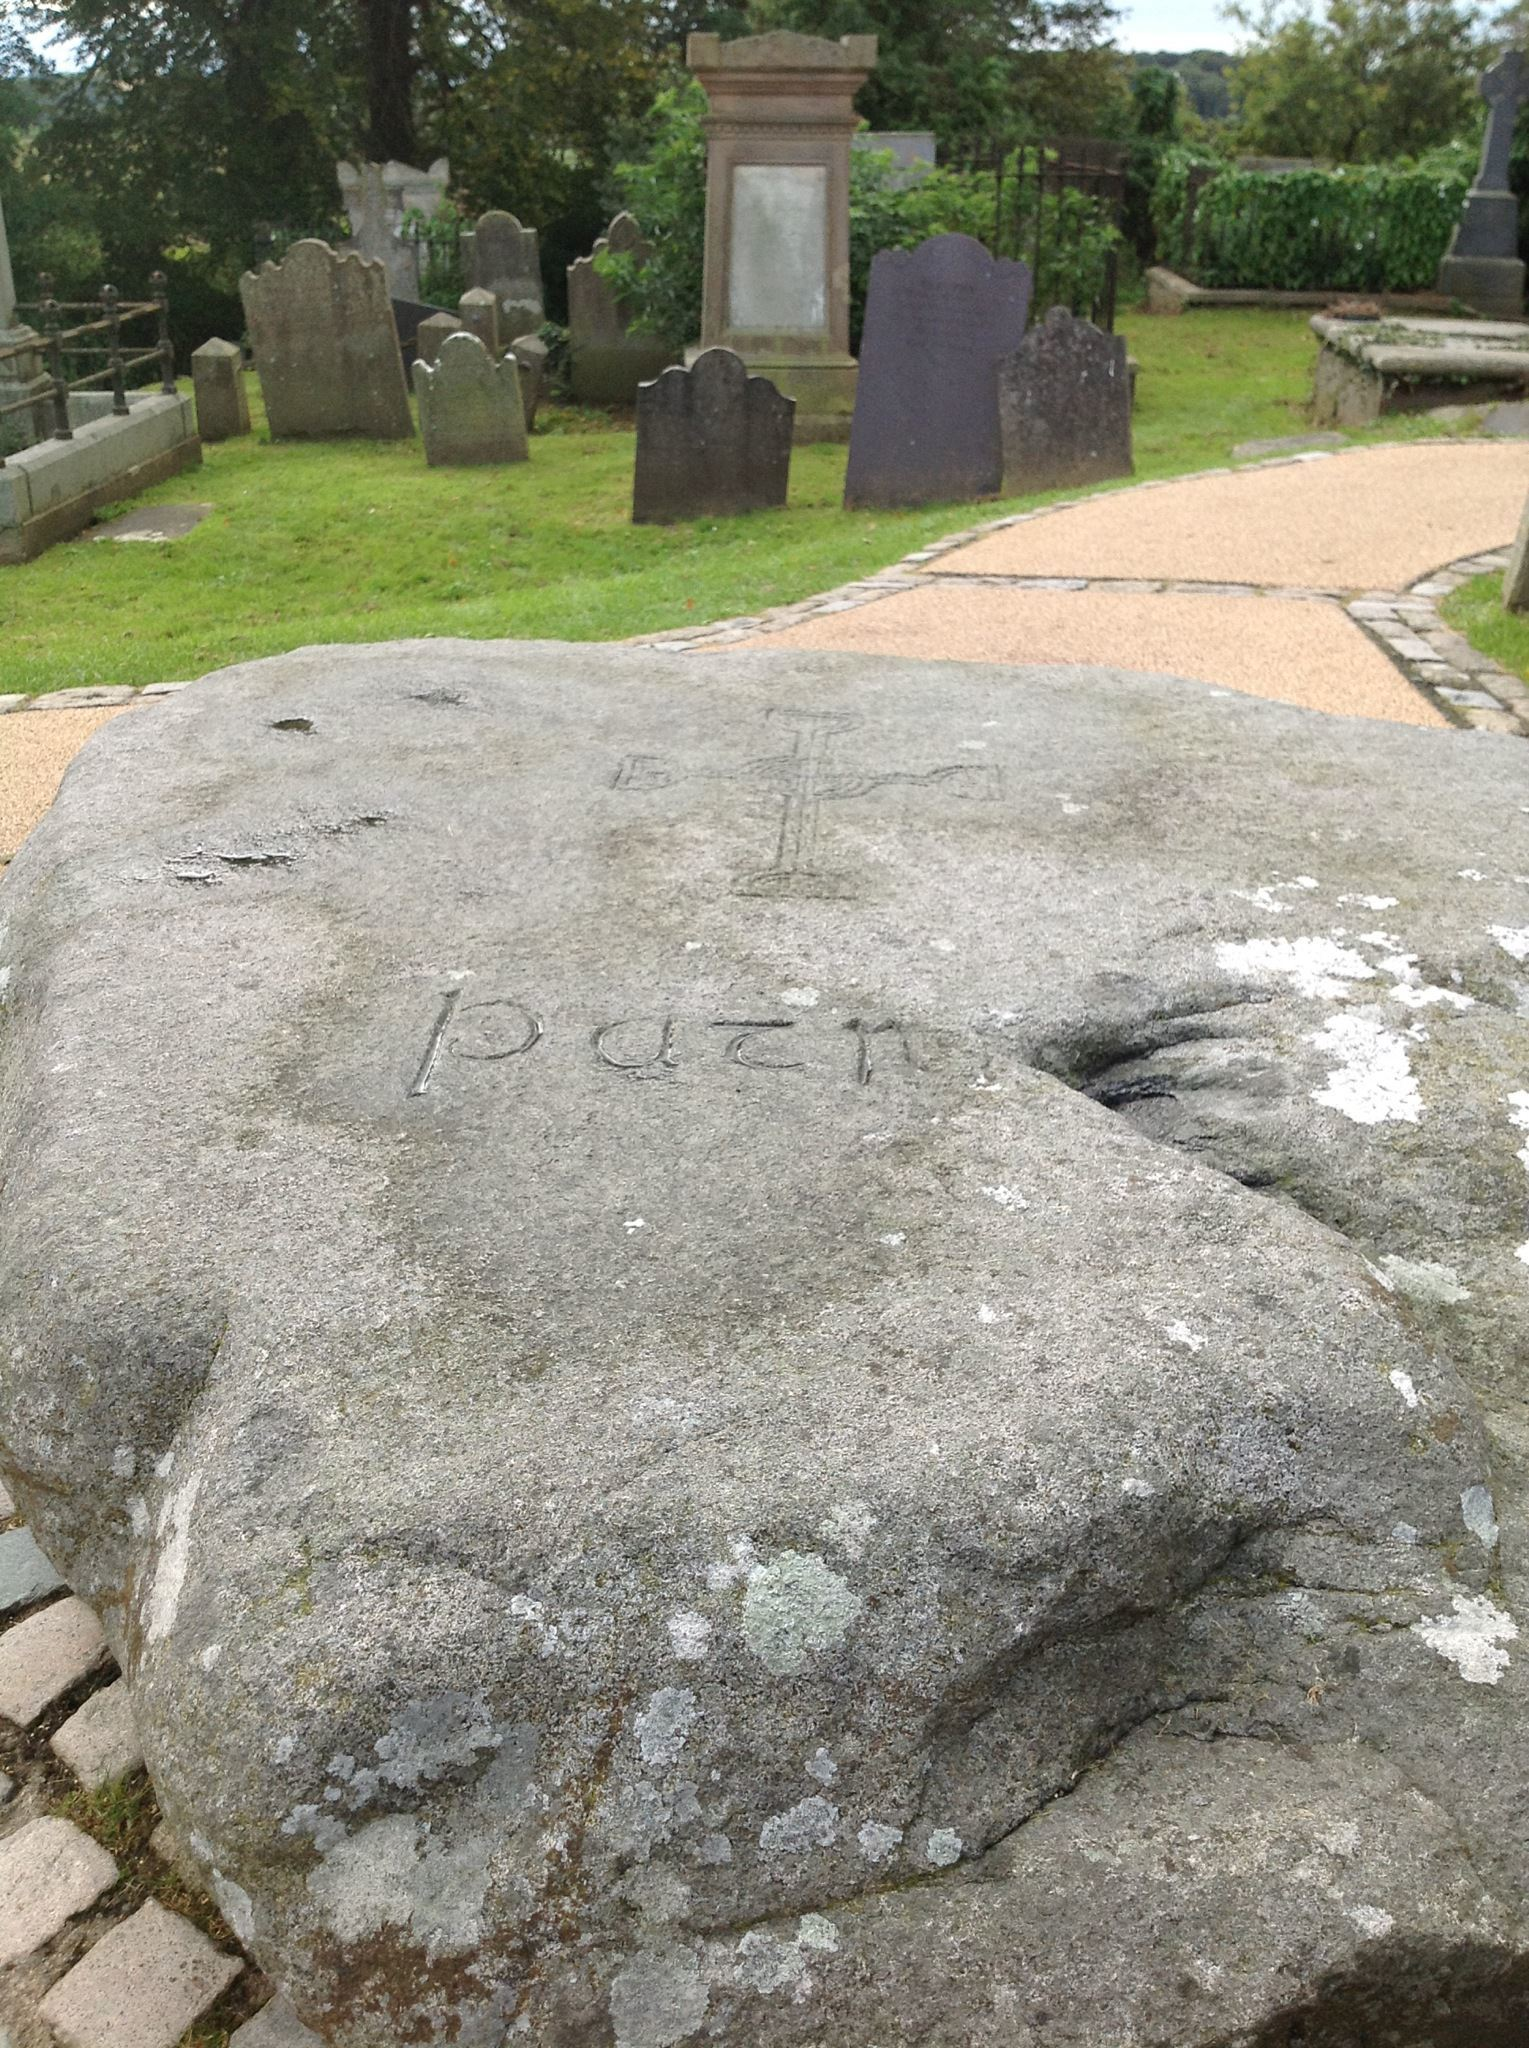 20971bda0572472cafac_St._Patrick_s_grave_in_Downpatrick_-_Sept._2012_photo_by_John_Mooney.jpg